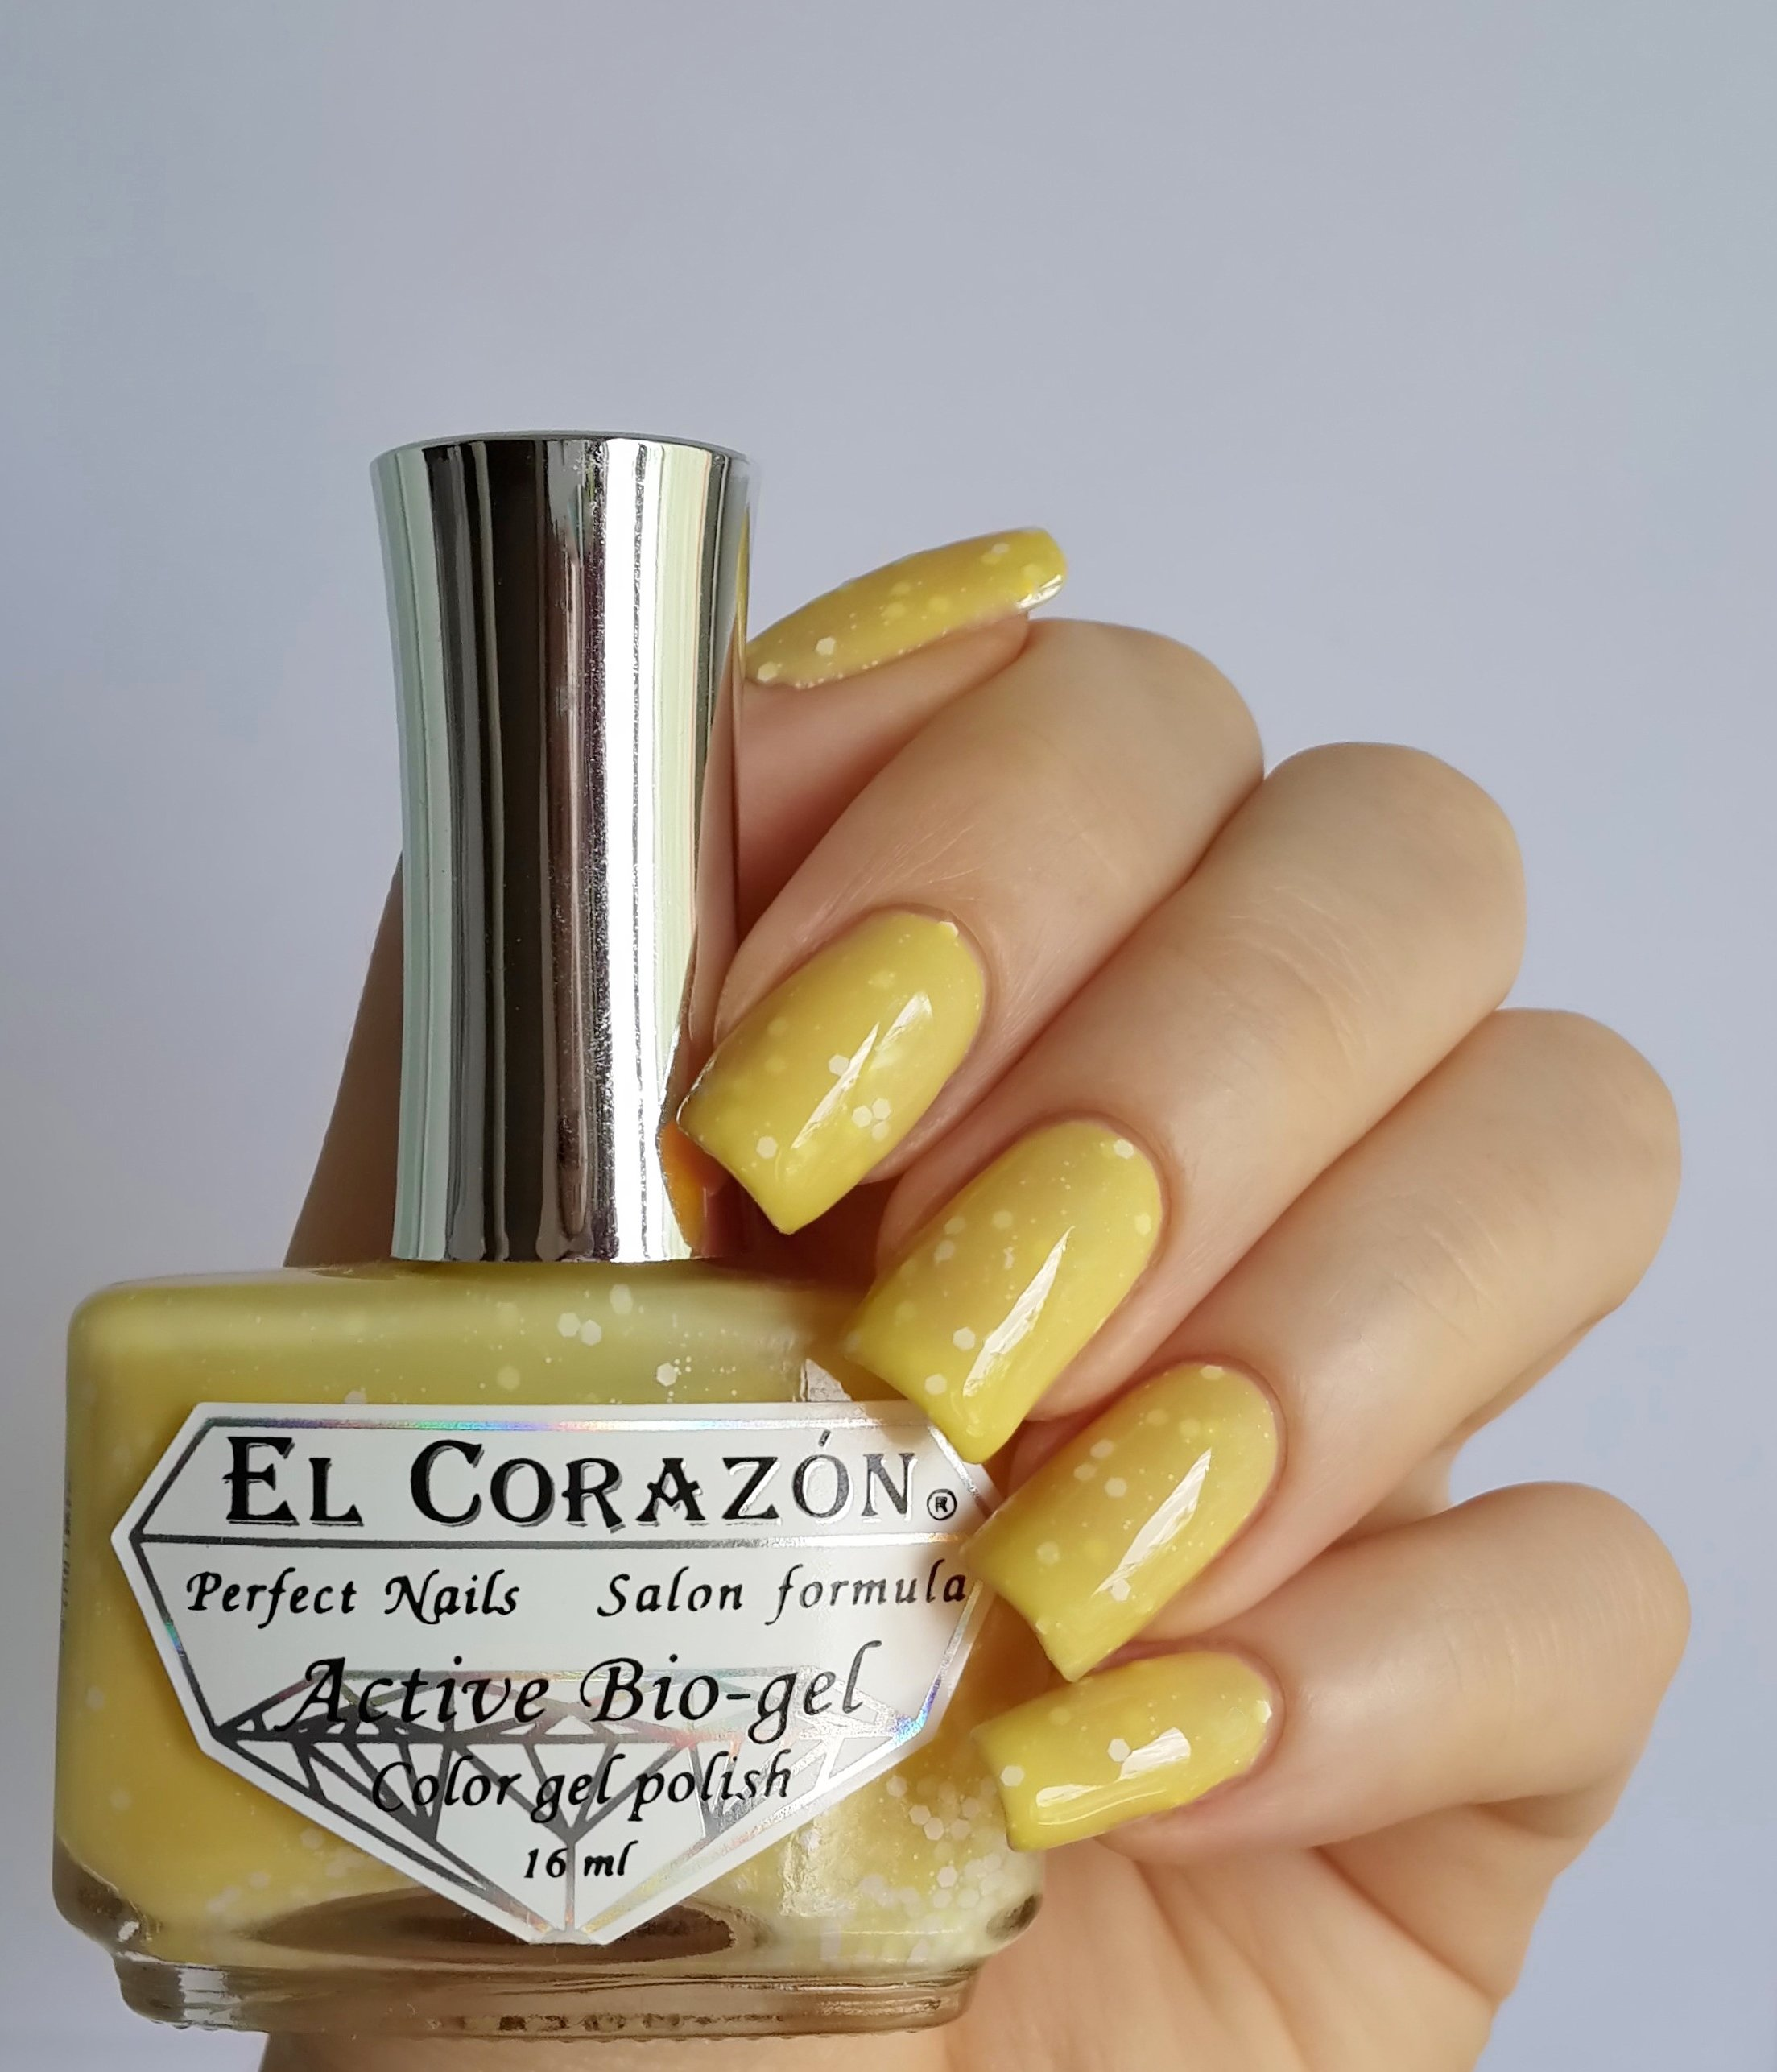 EL Corazon Active Bio-gel Color gel polish Fashion girl at the wheel №423/202